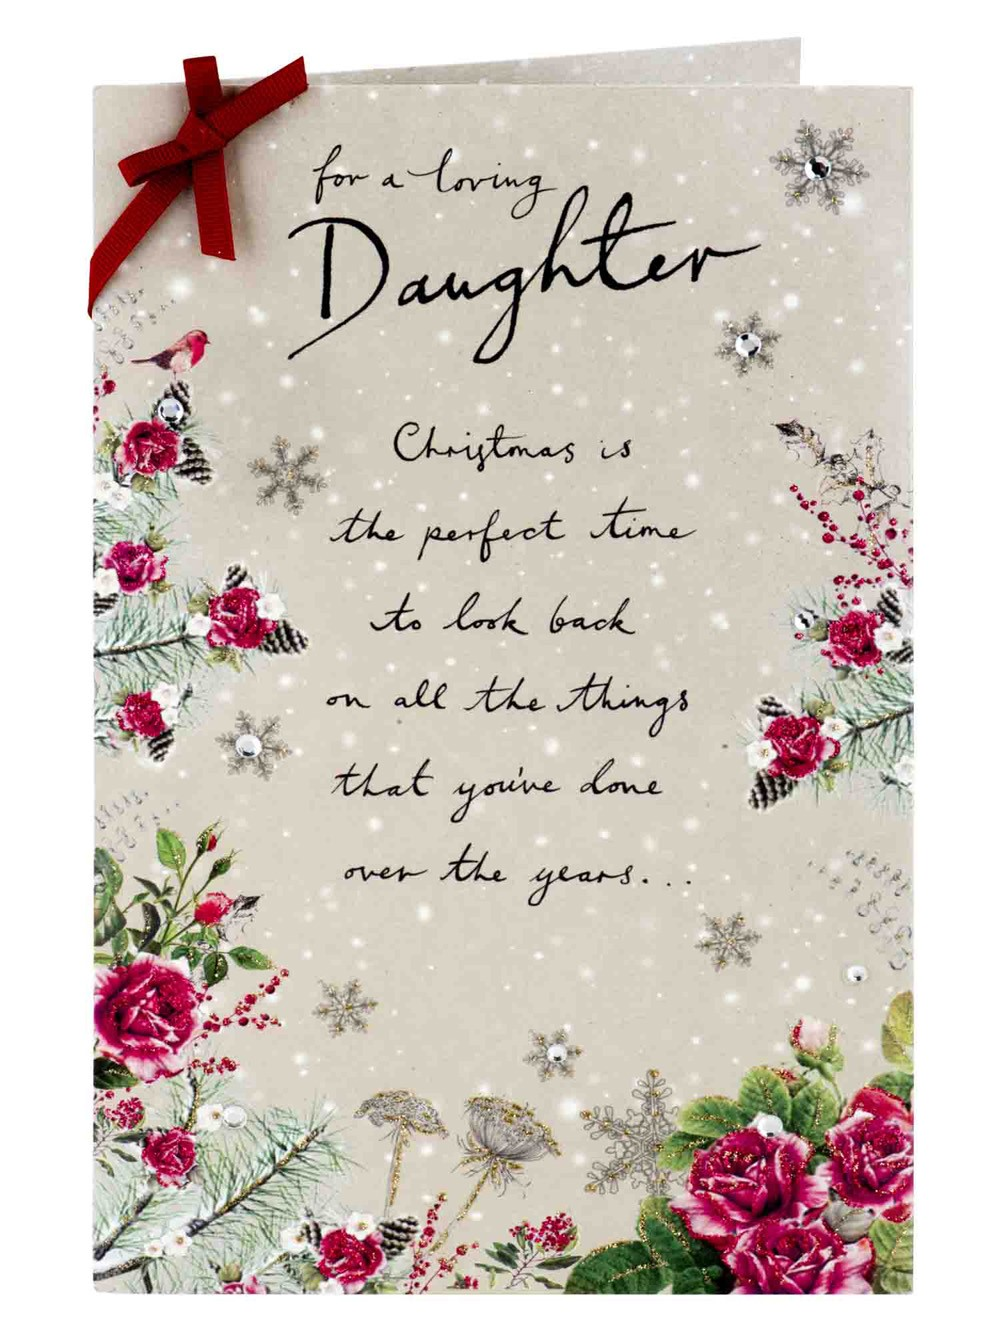 Christmas Message for Daughter